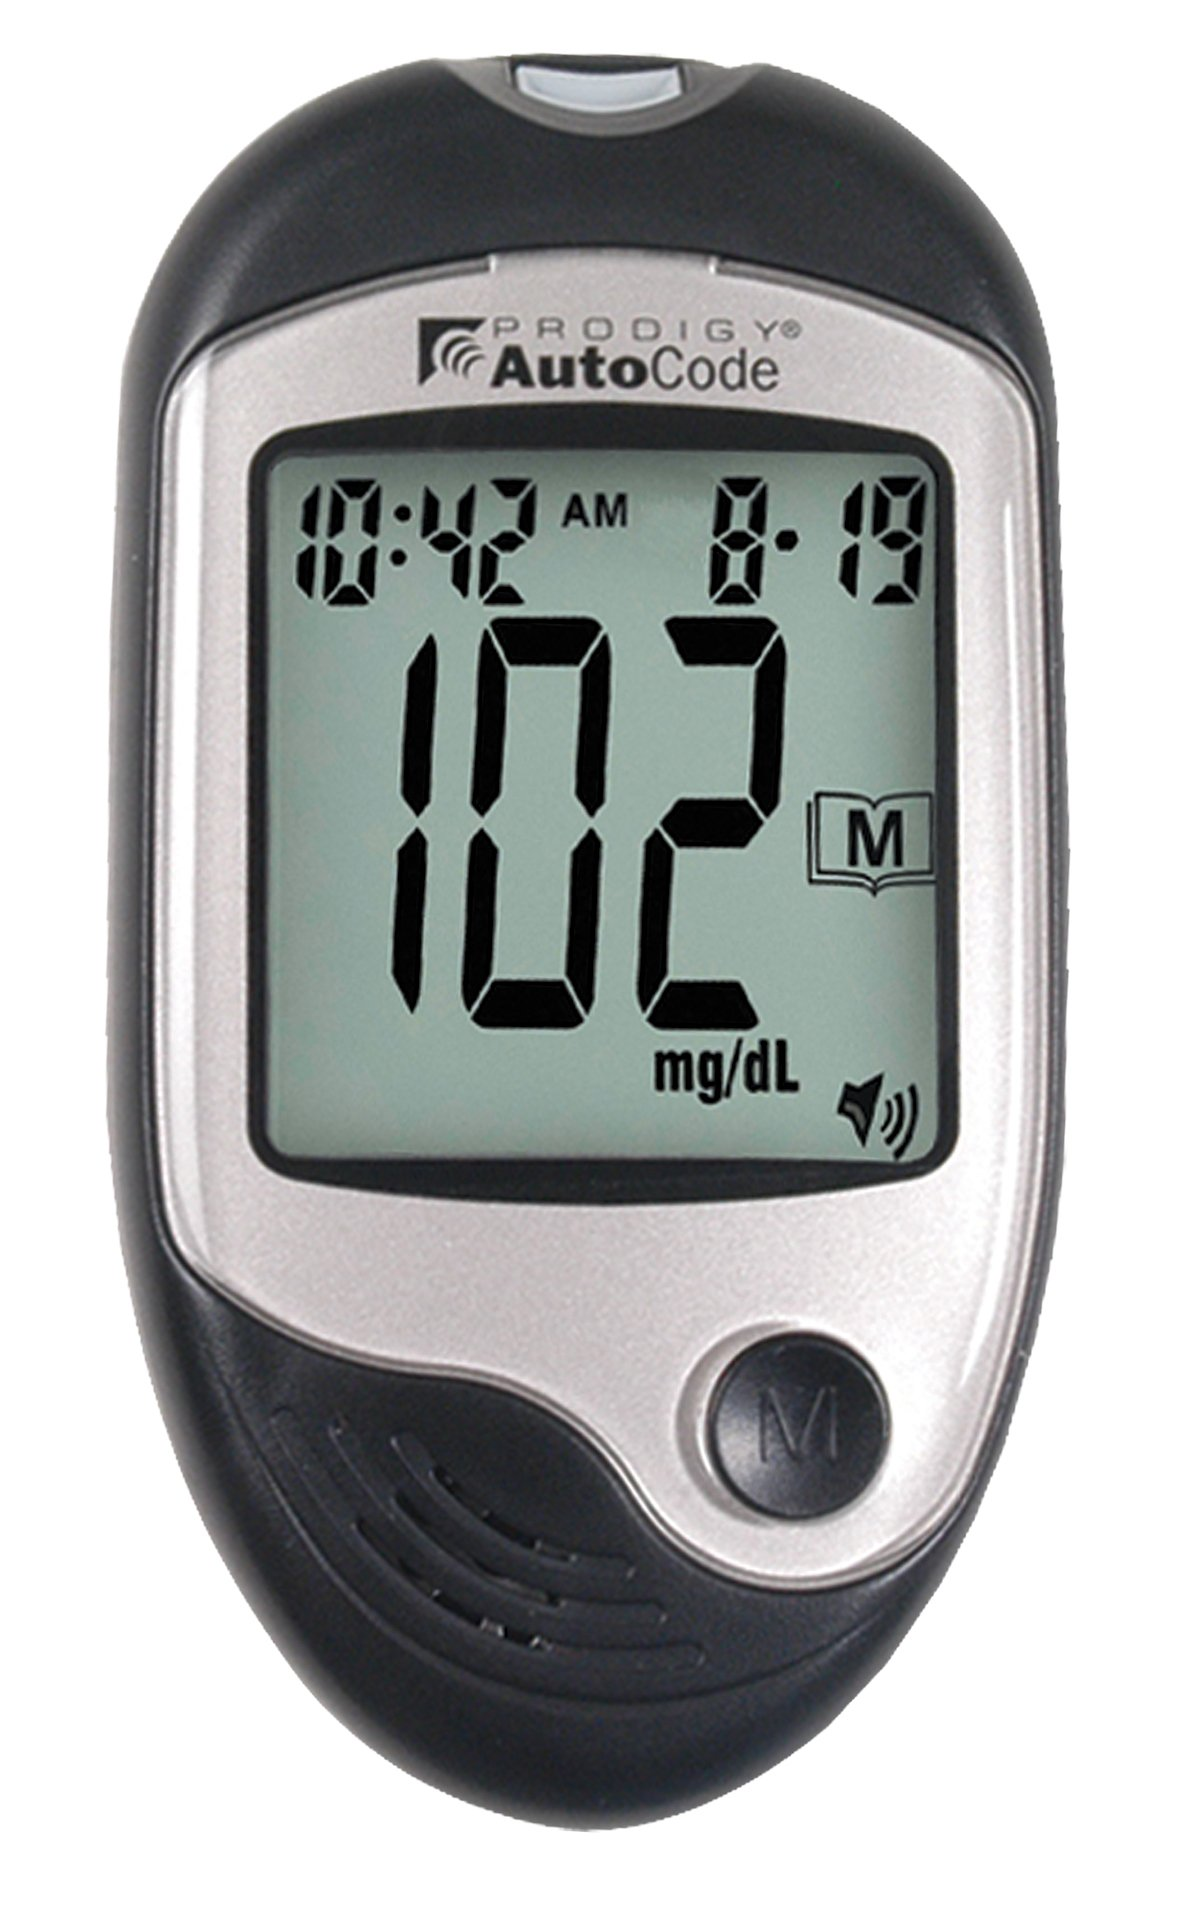 Prodigy Glucose Monitoring System For Diabetic Insulin Management, Auto code Talking Glucose Testing Meter